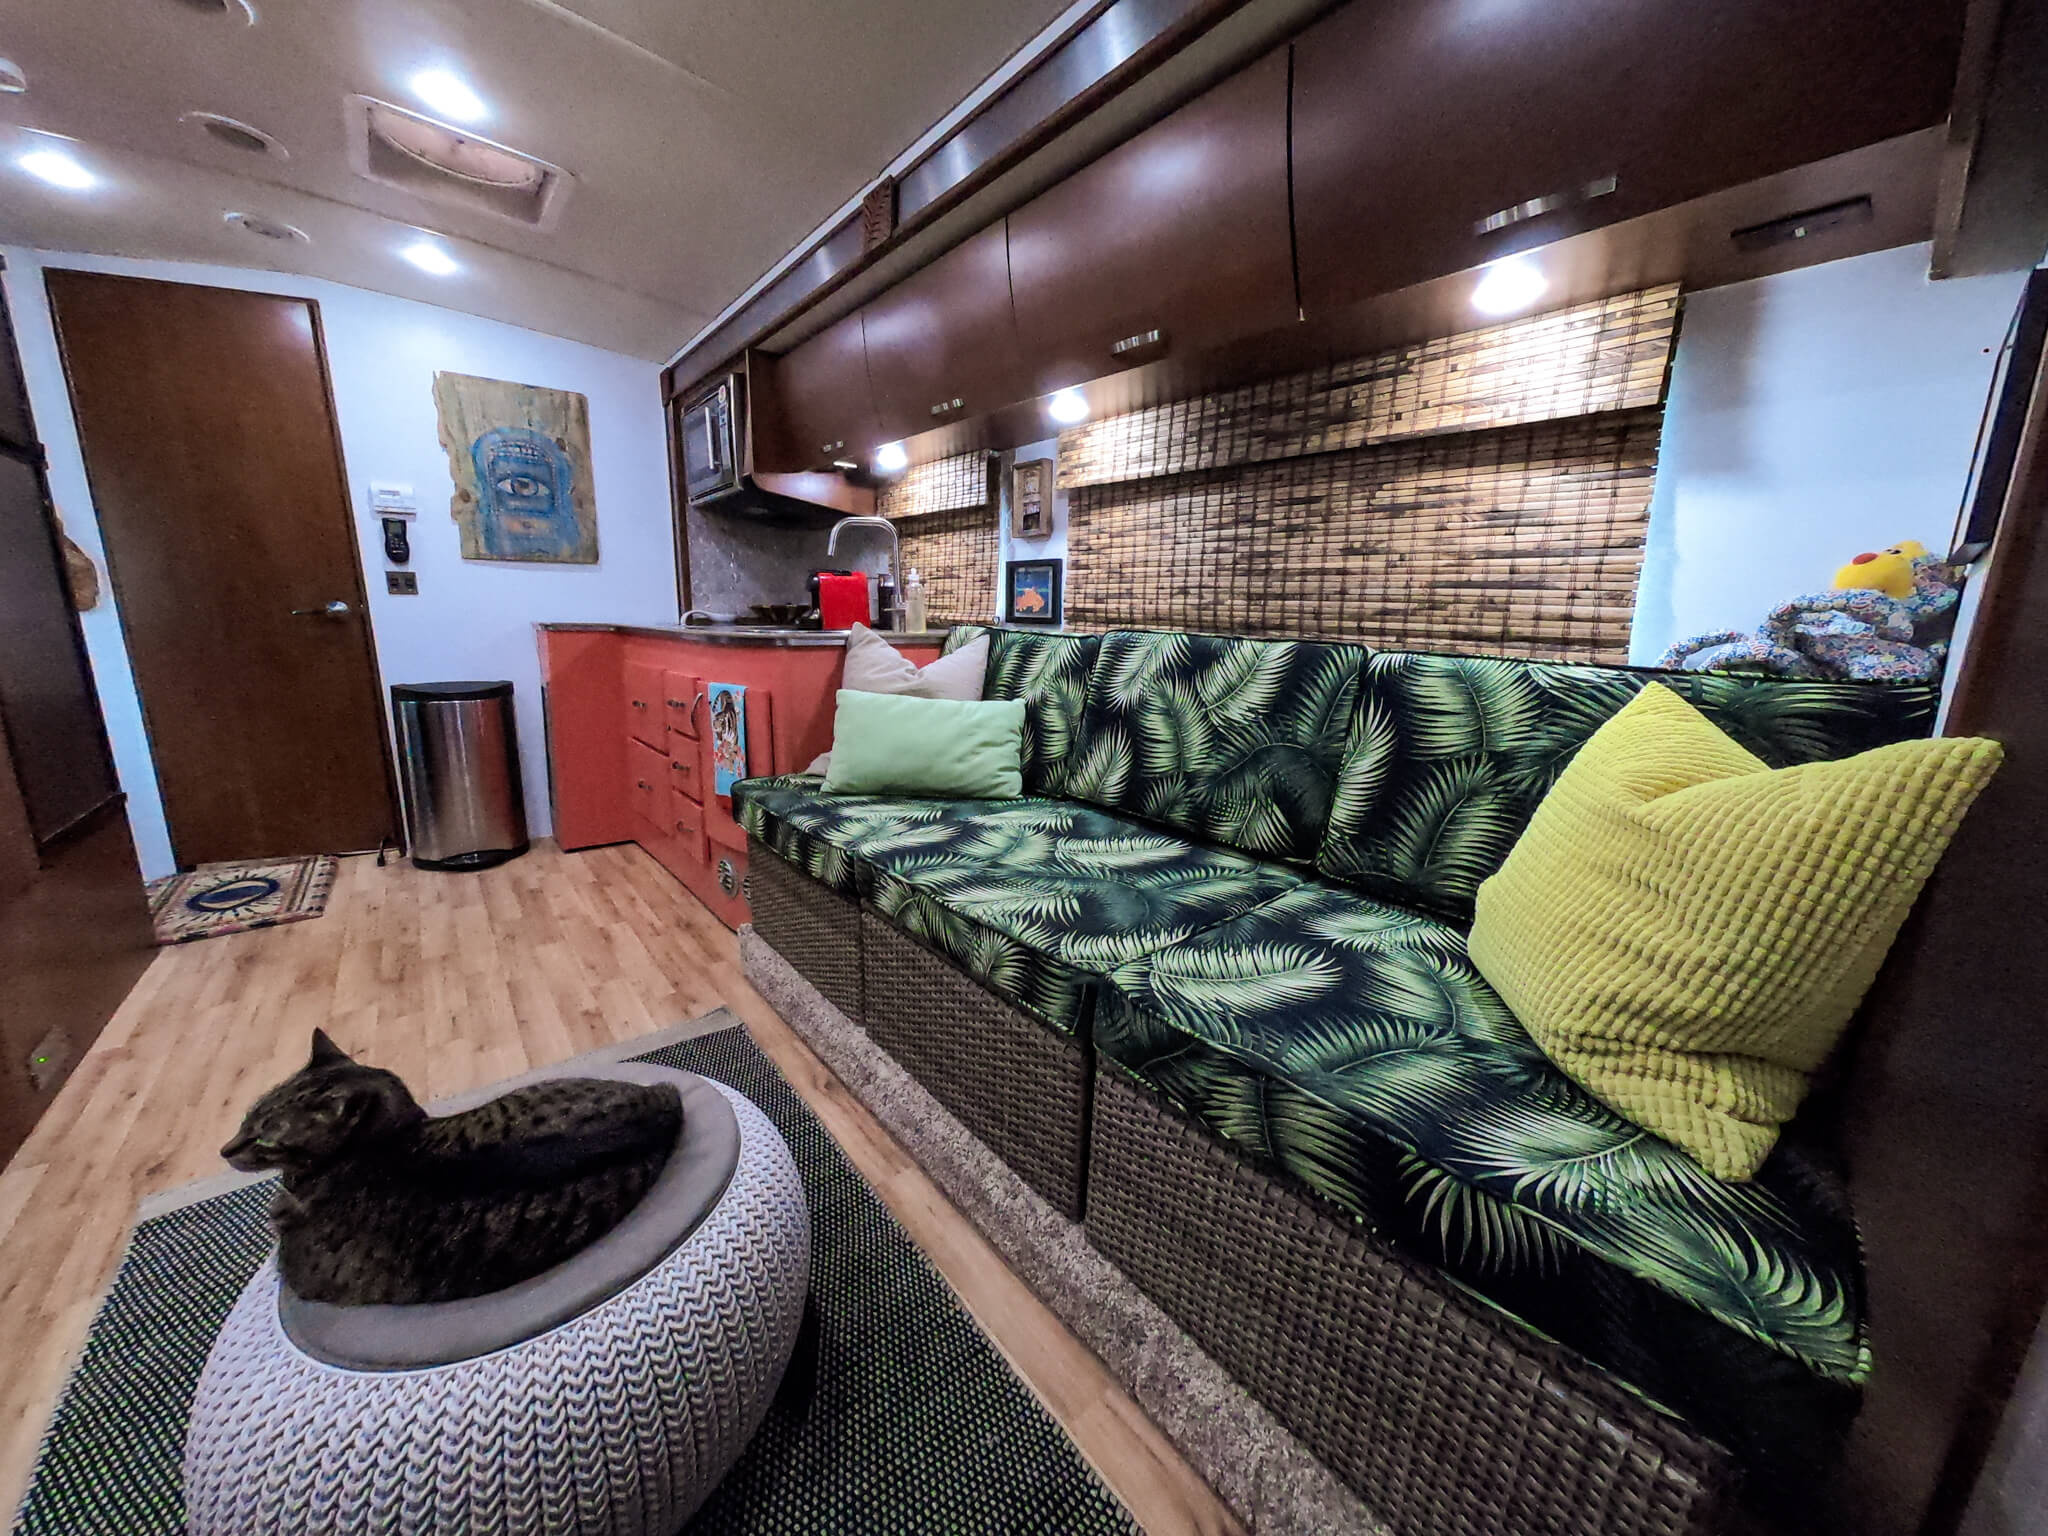 Interior of Remodeled Class C RV